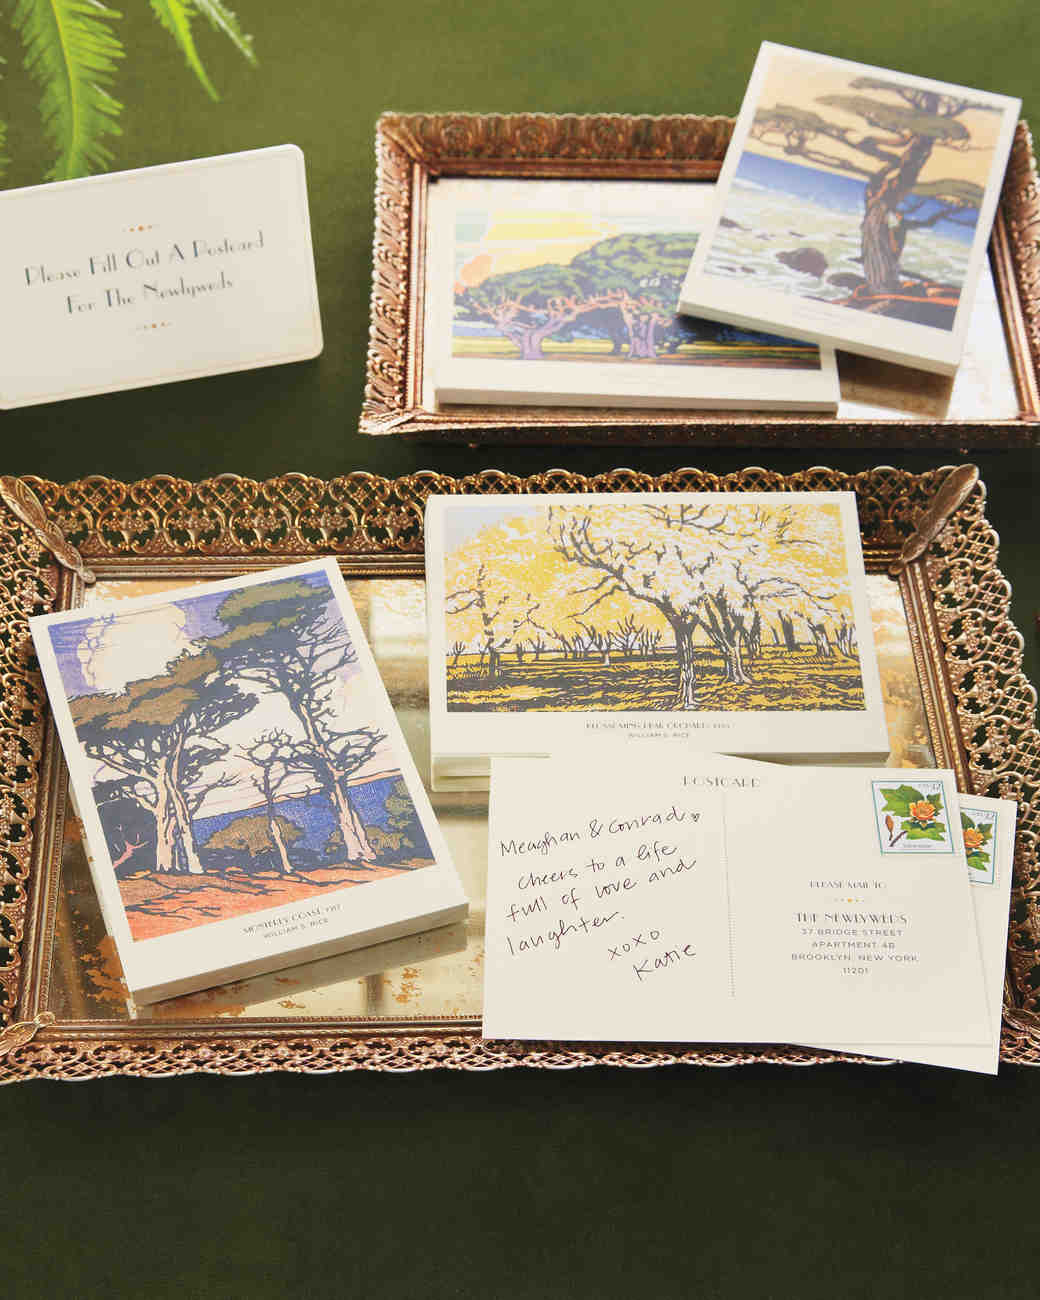 Wedding Guest Book Ideas: 68 Guest Books From Real Weddings